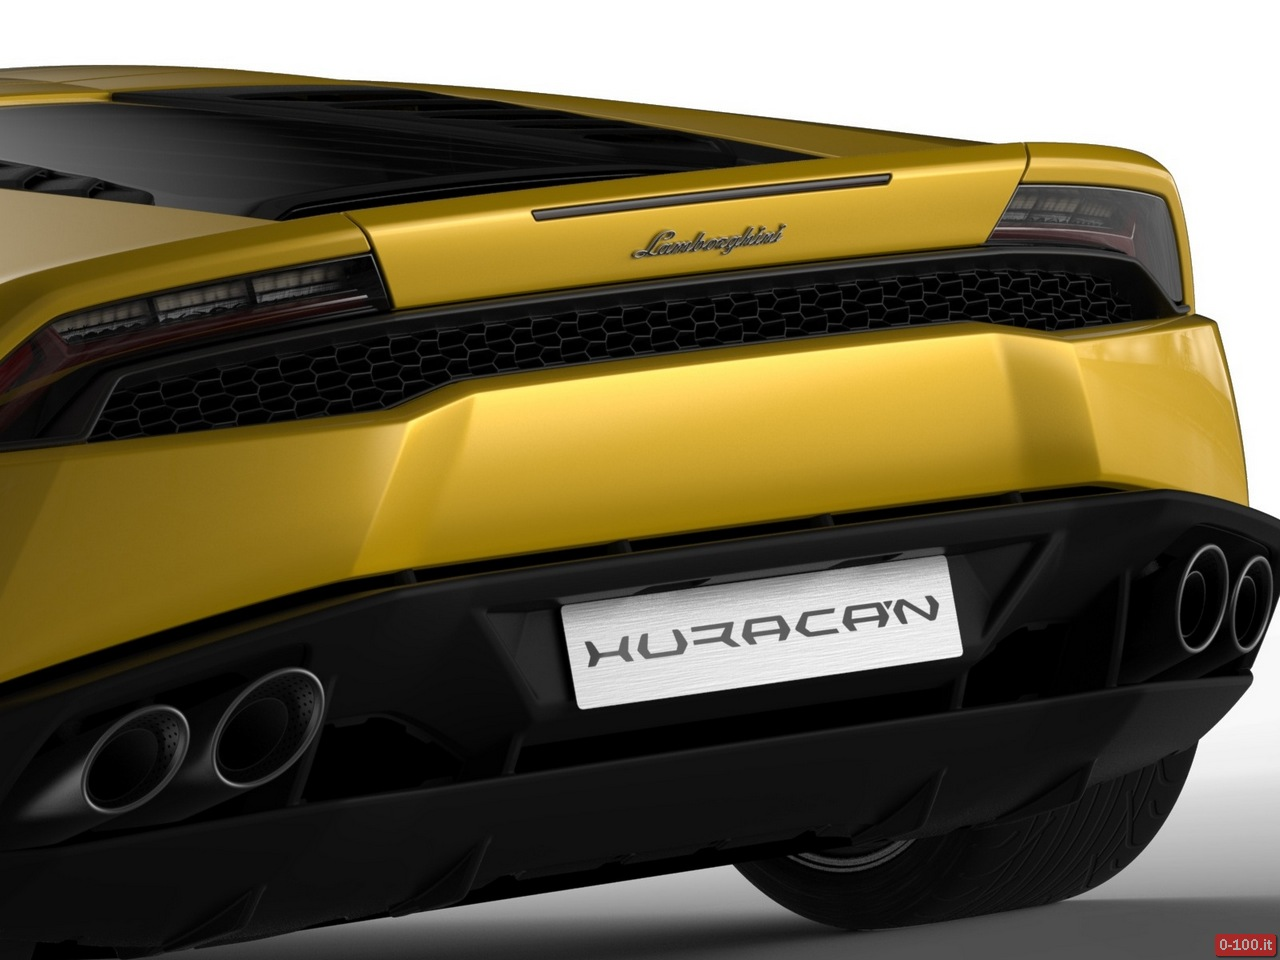 lamborghini huracan gi 700 esemplari ordinati 0 100 motori orologi lifestyle. Black Bedroom Furniture Sets. Home Design Ideas